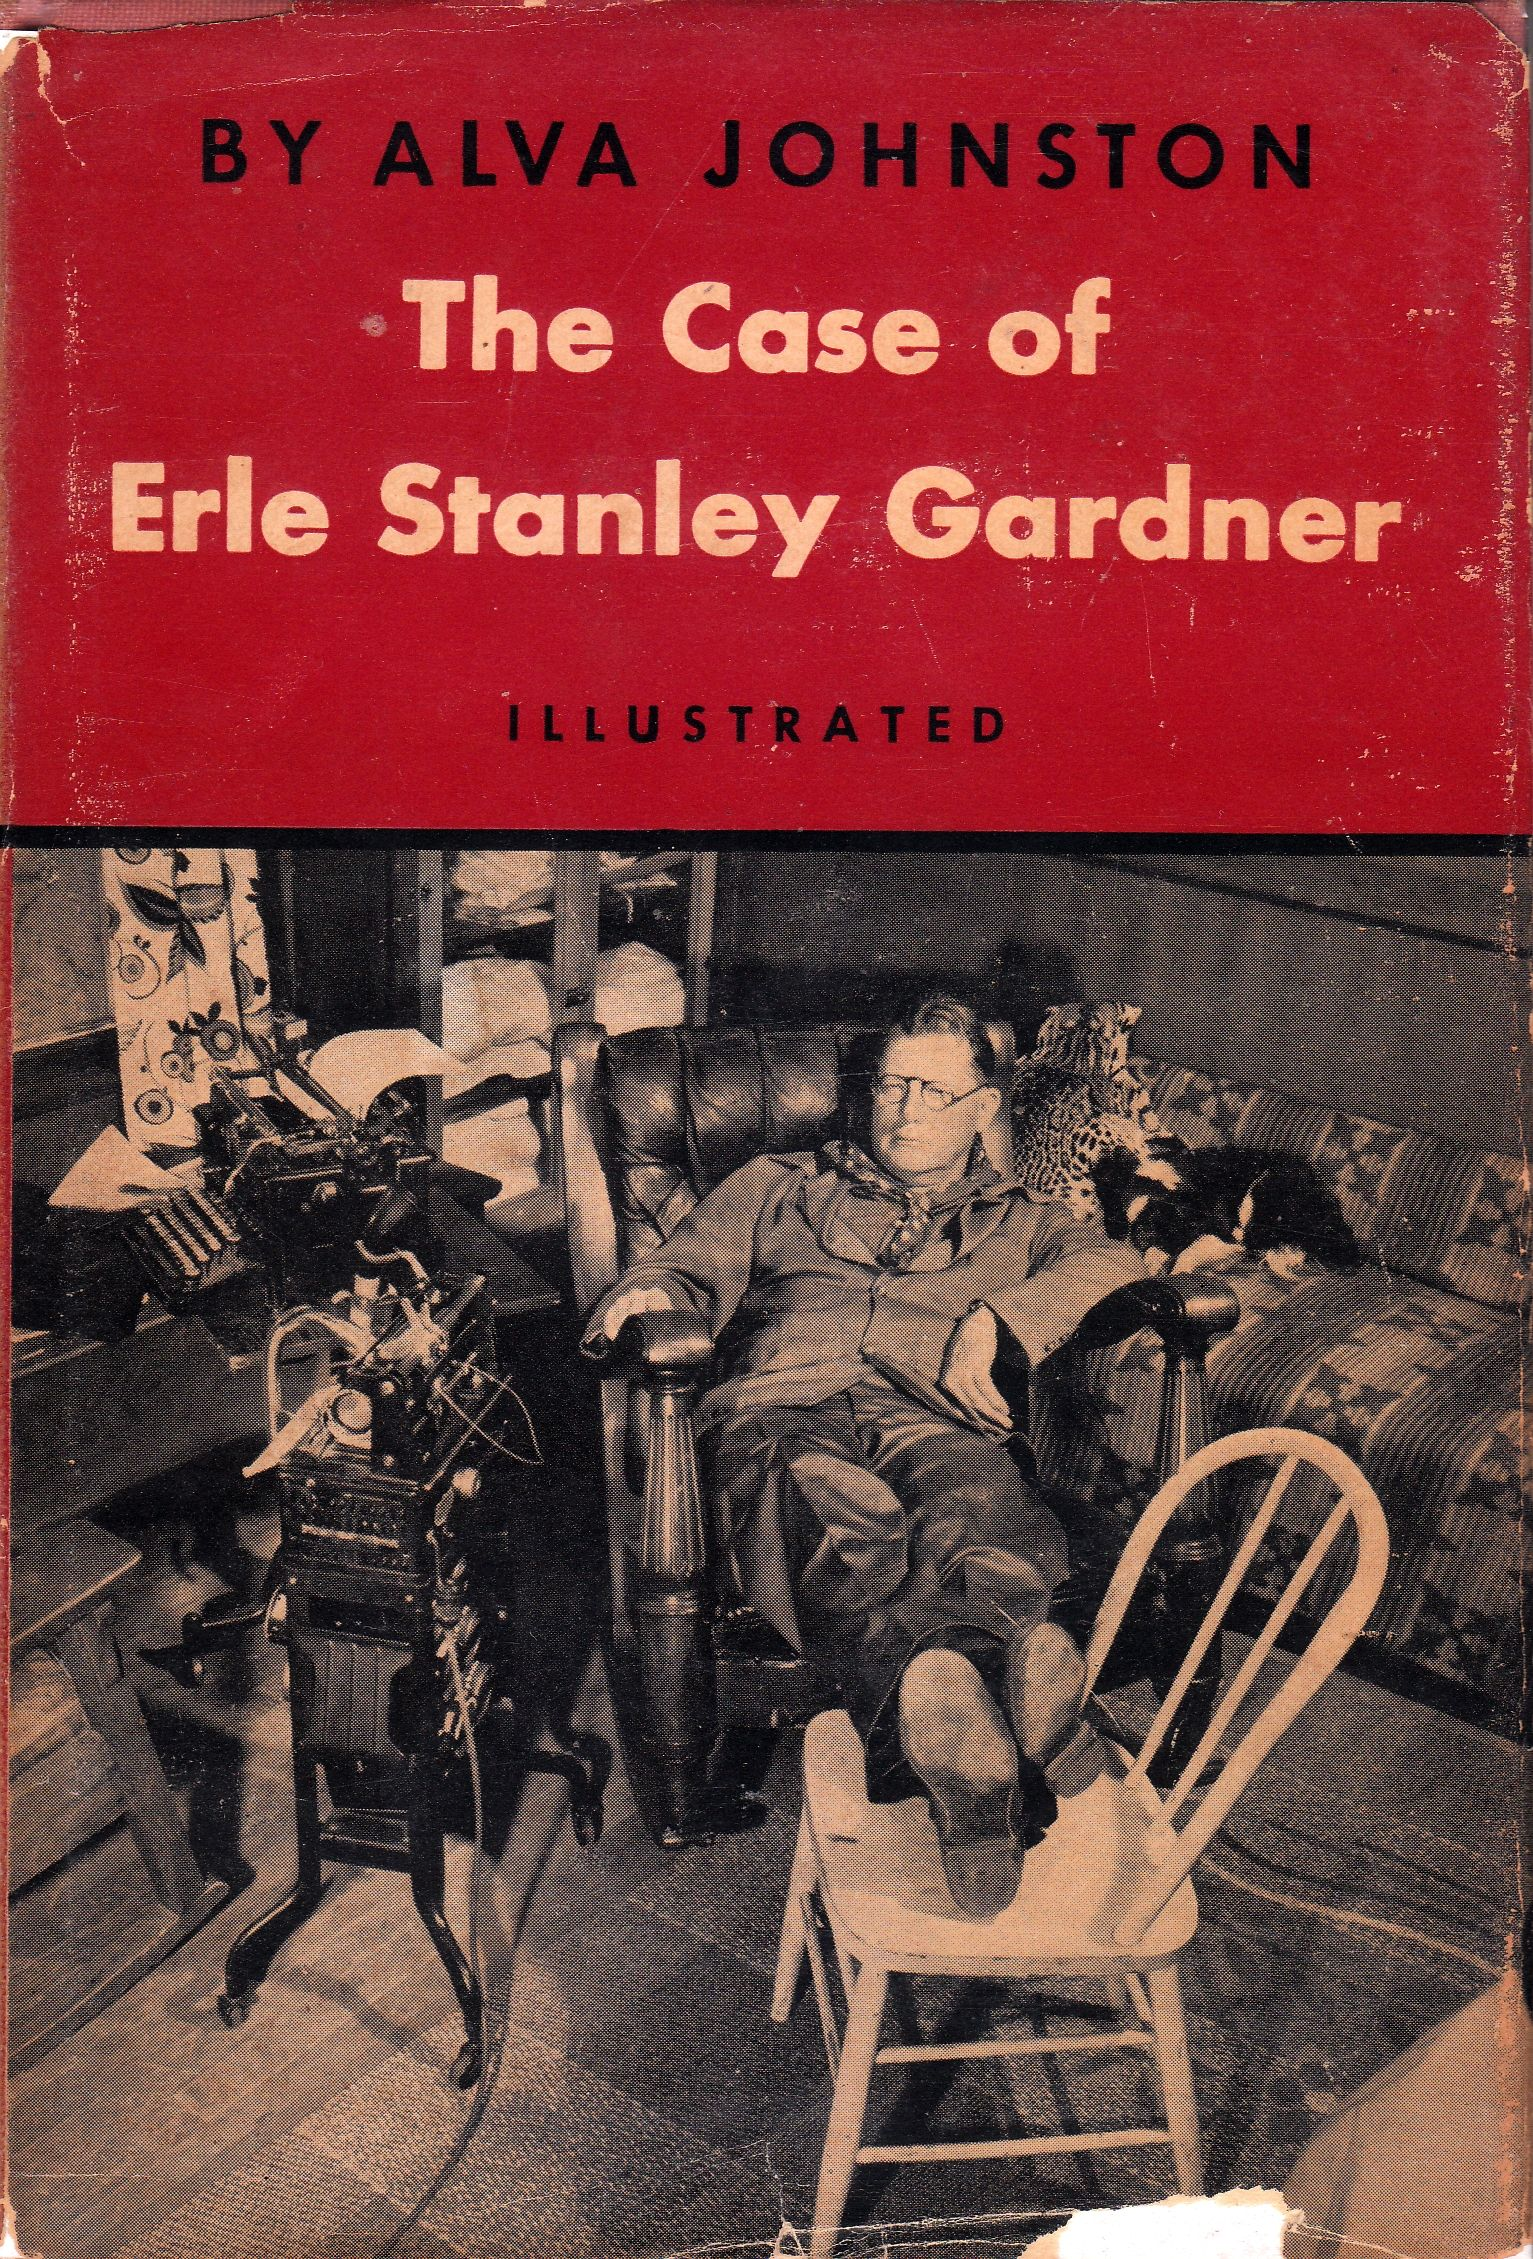 Originally A Series Of Articles In The Saturday Evening Post This Biography Of Erle Stanley Gardner Was Published I William Morrow Saturday Evening Post Books